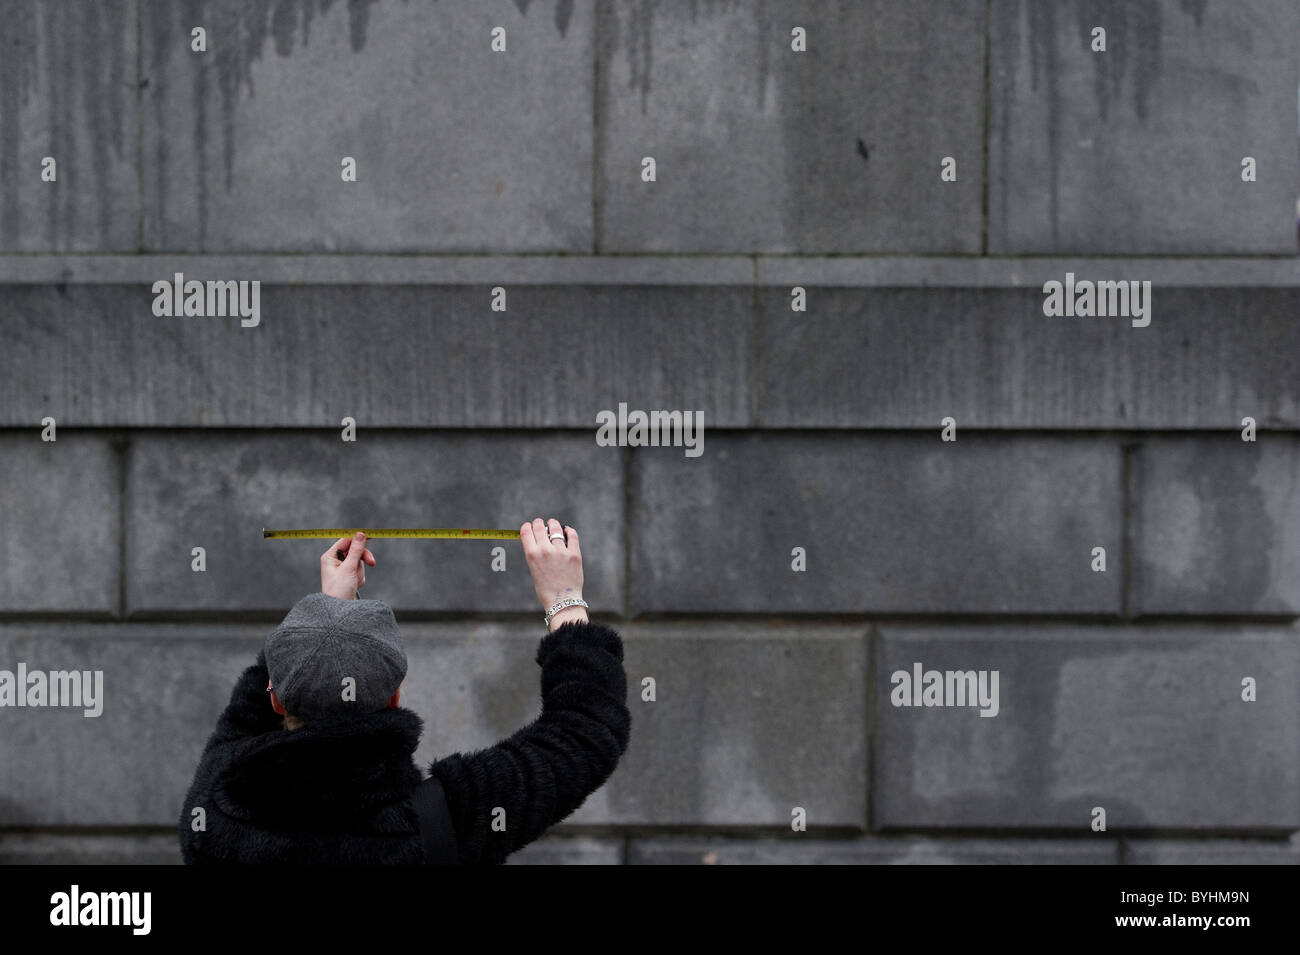 A woman measures a section of wall with a tape measure. - Stock Image